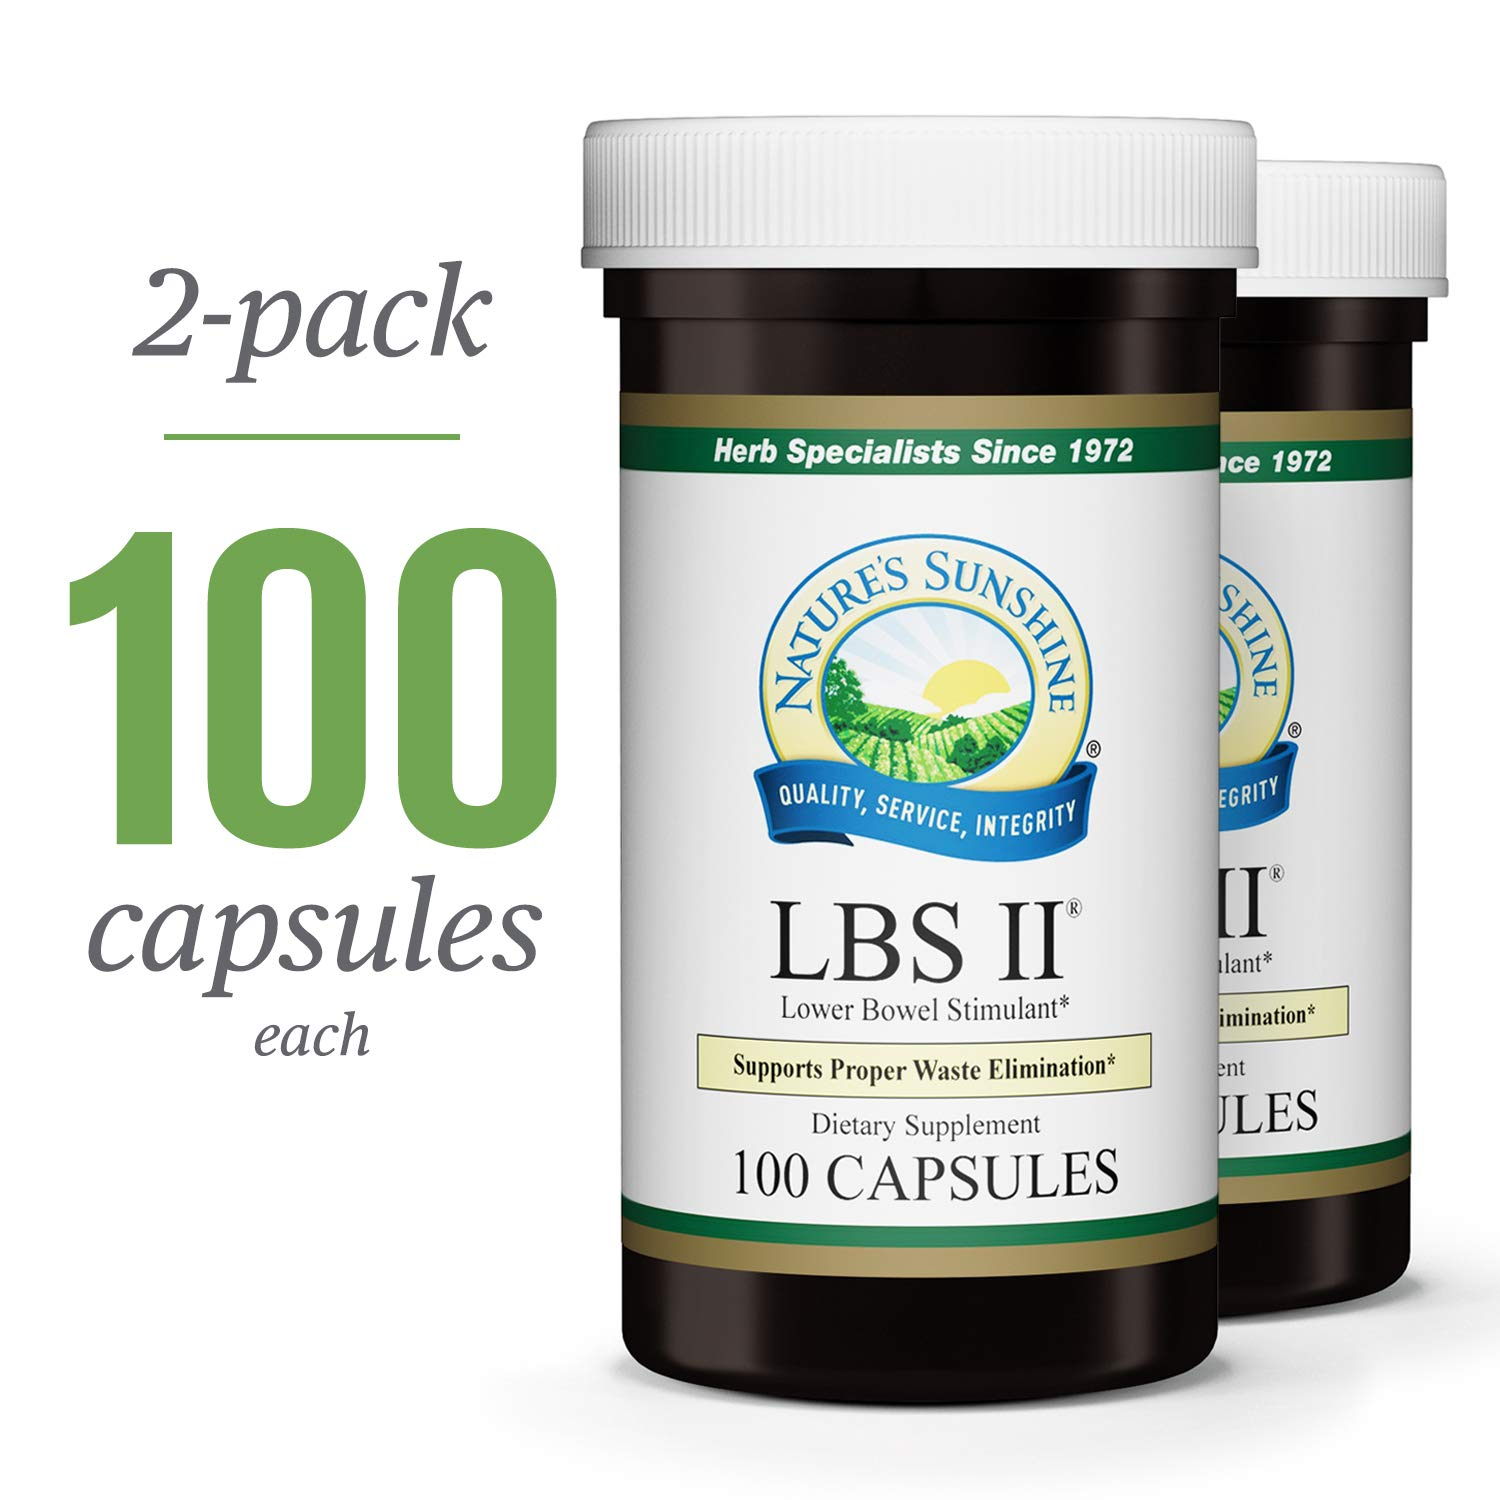 Nature's Sunshine LBS II, 100 Capsules, 2 Pack, Kosher | Herbal Laxative with Cascara Sagrada Bark Supports The Digestive System and Lower Bowel Health by Nature's Sunshine